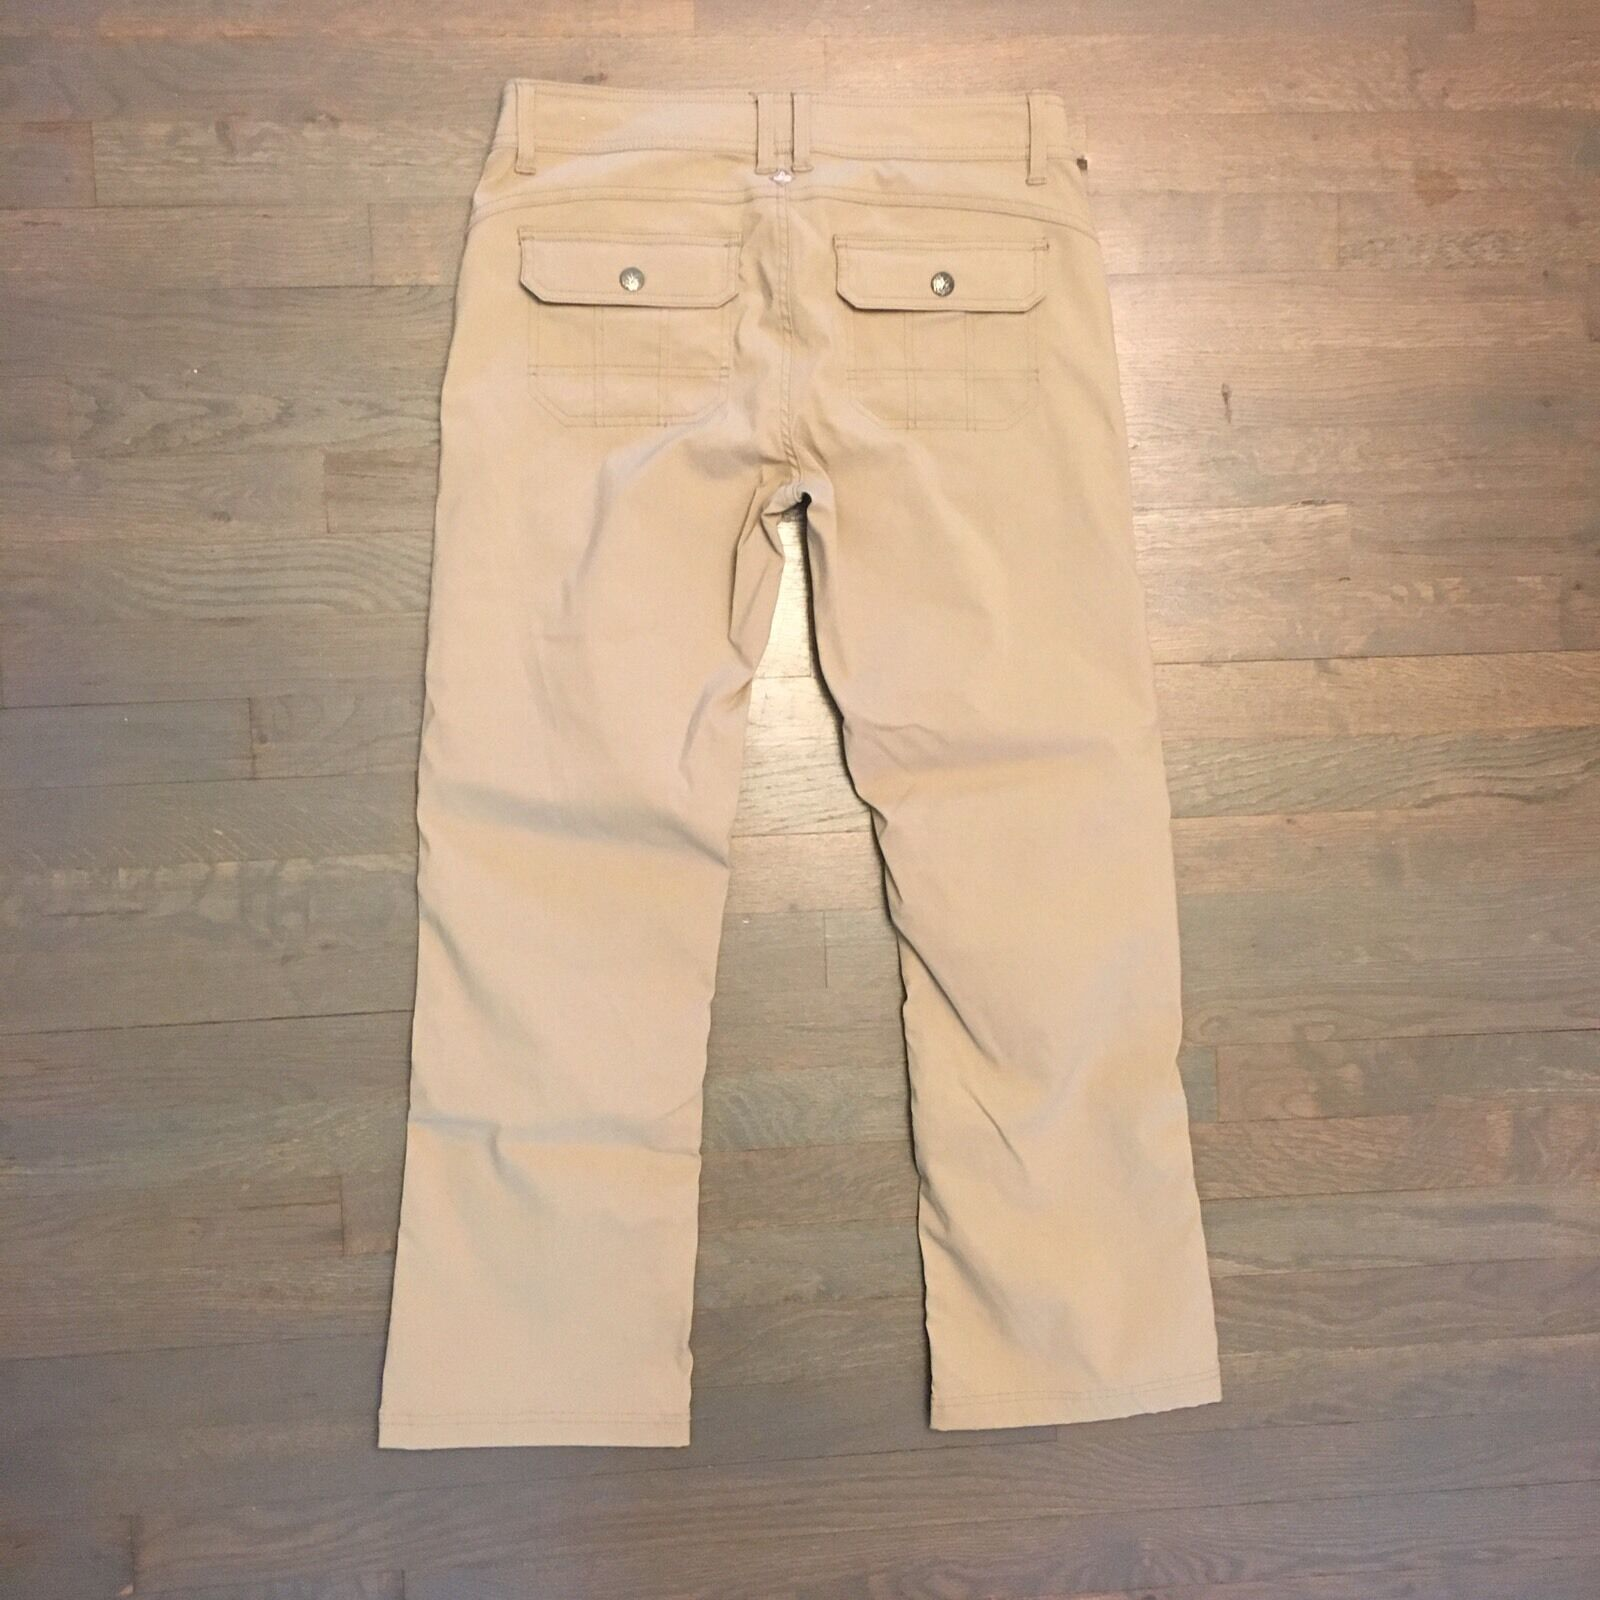 Prana Hiking Casual Congreenible Pants Woman's Size 10 Beige